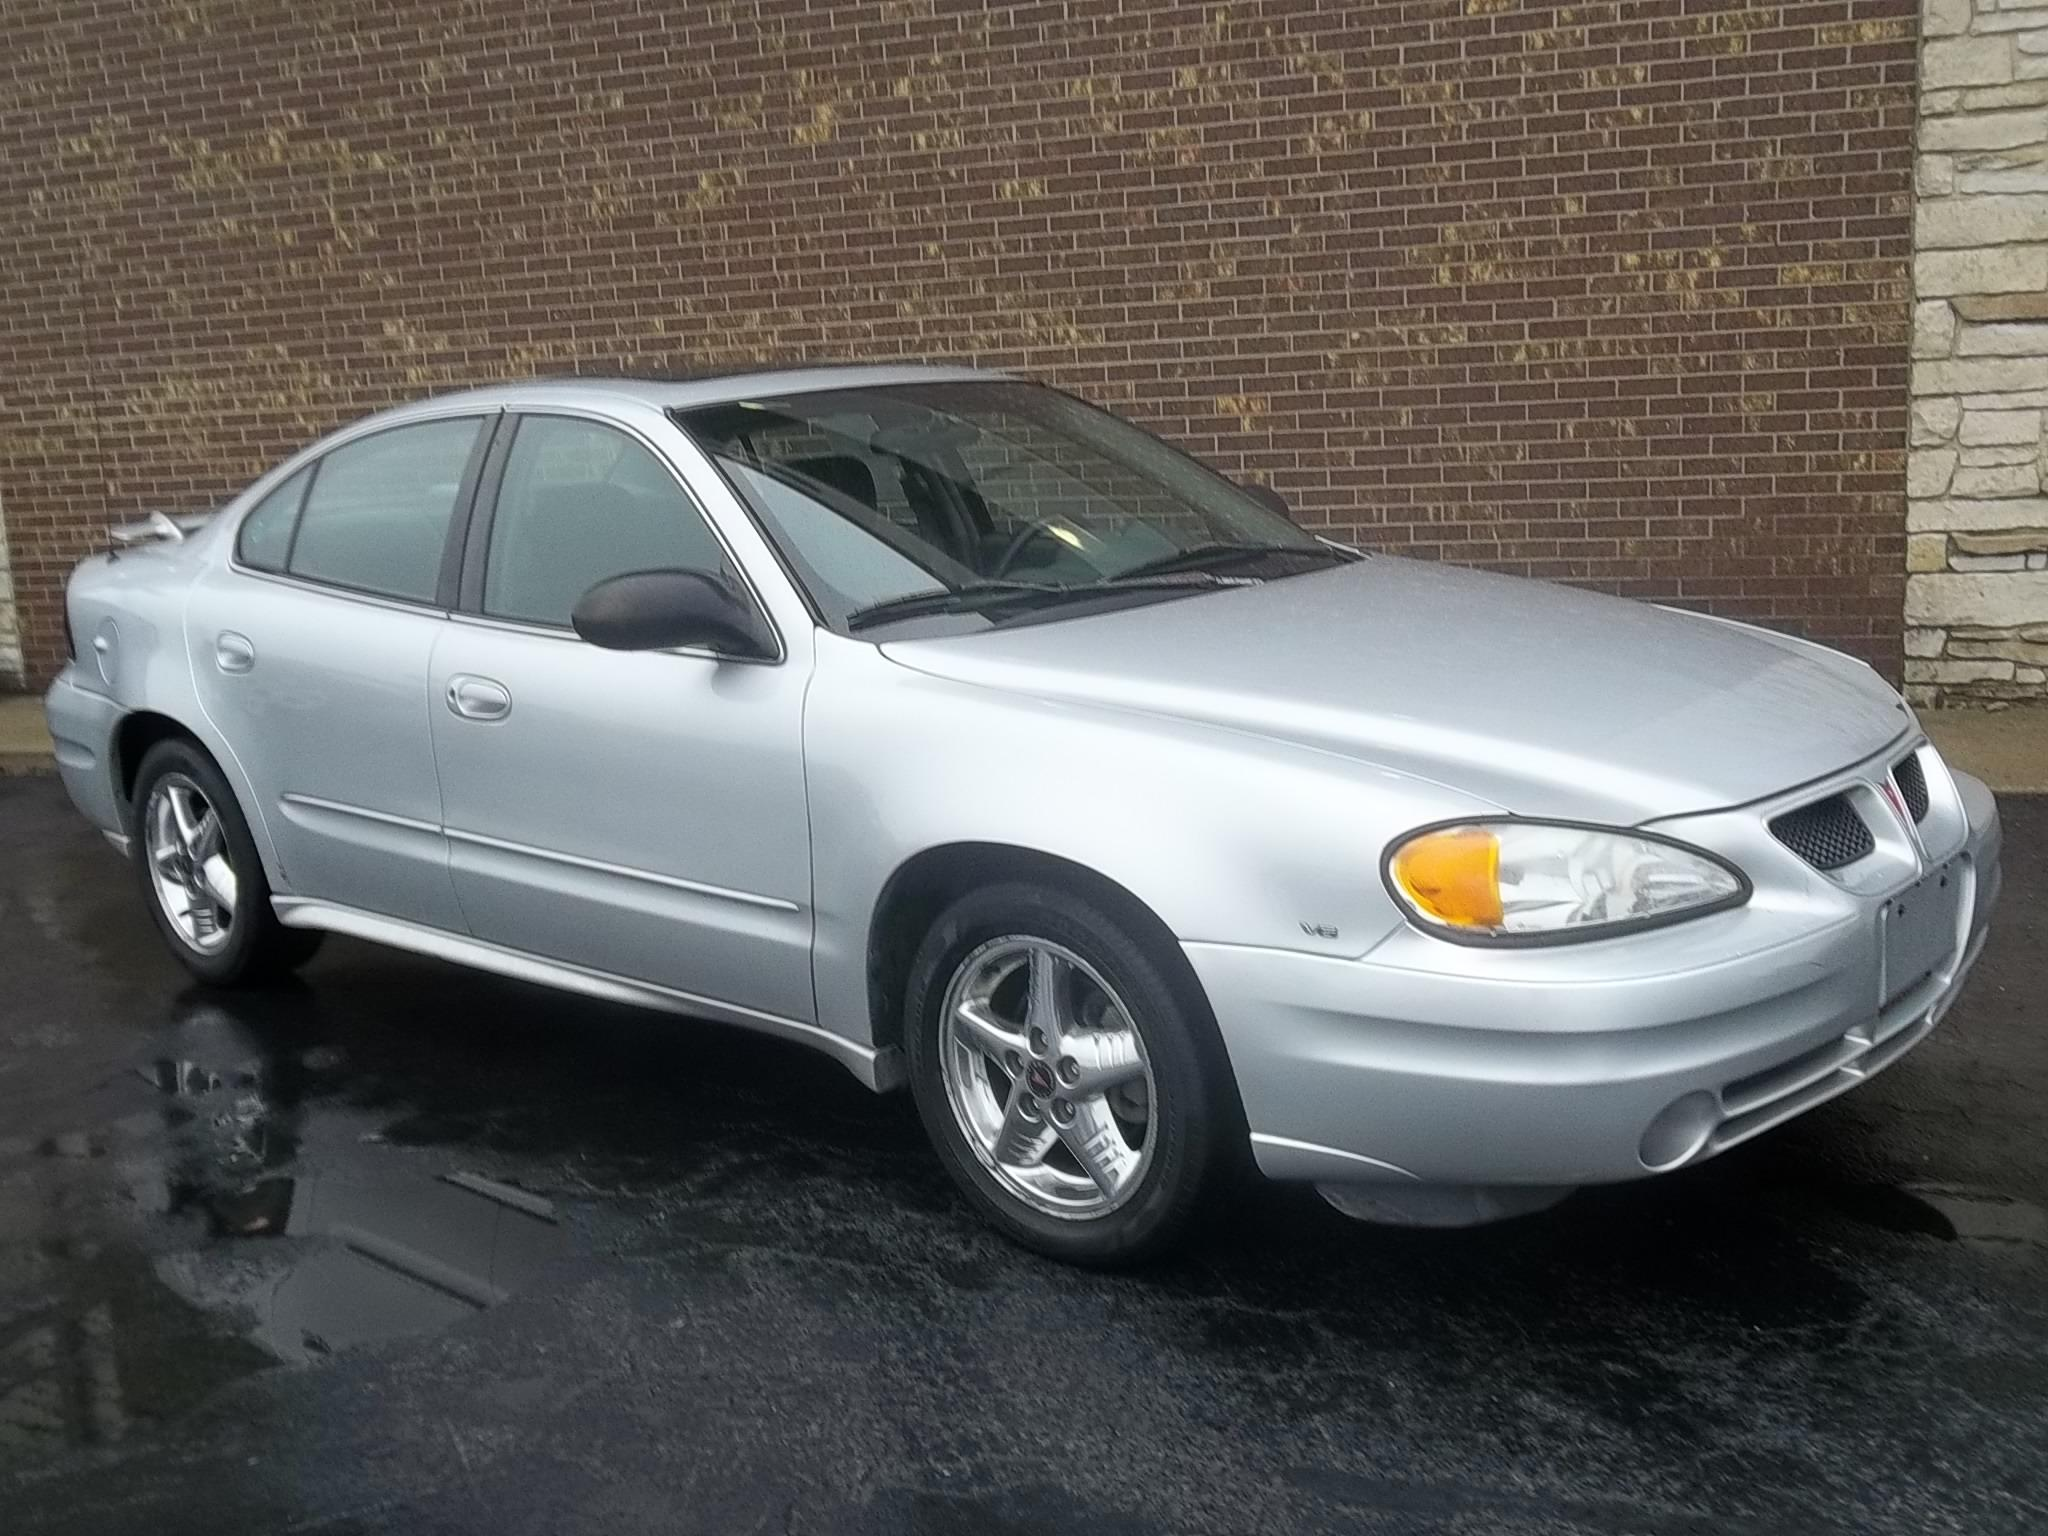 2004 Pontiac Grand Am BHPH Fair Market Value